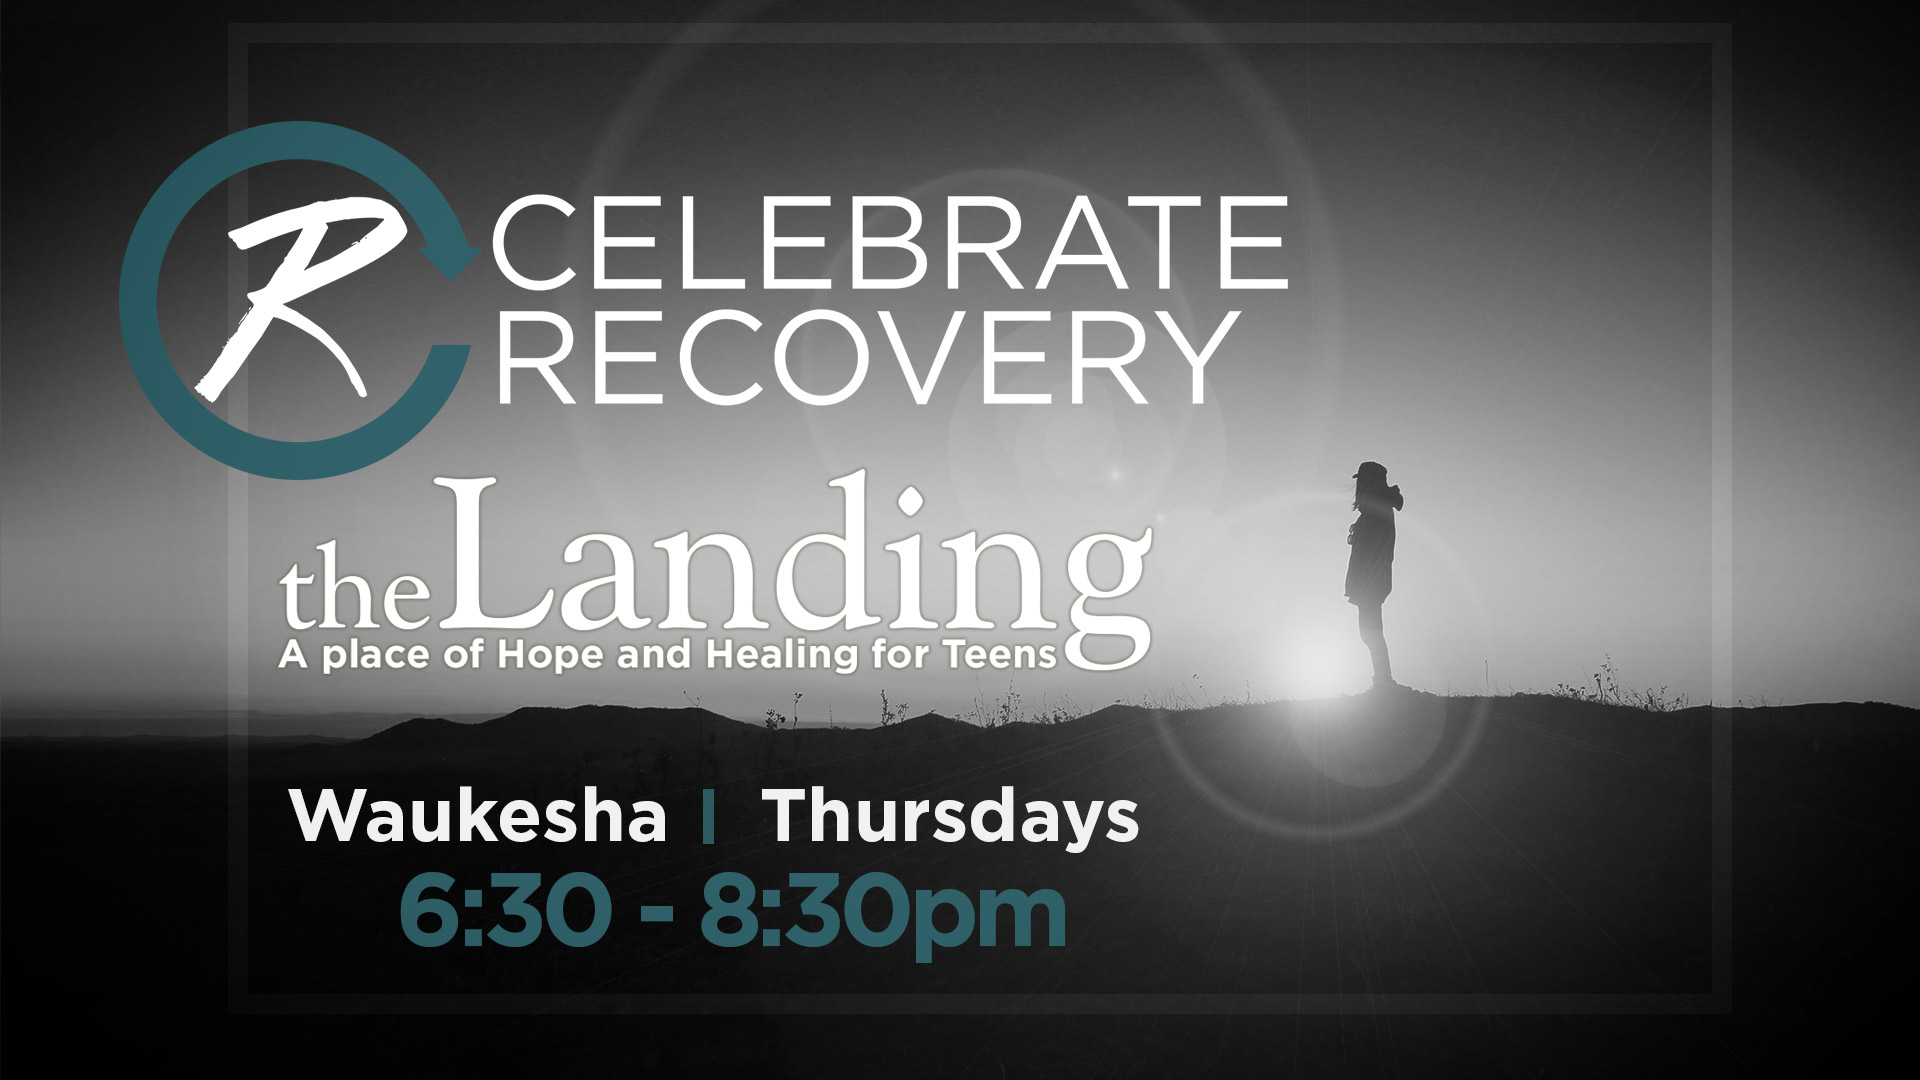 Celebrate Recovery is a program for those with addictions that is christ centered and like Alcoholics Anonymous in the Waukesha area.